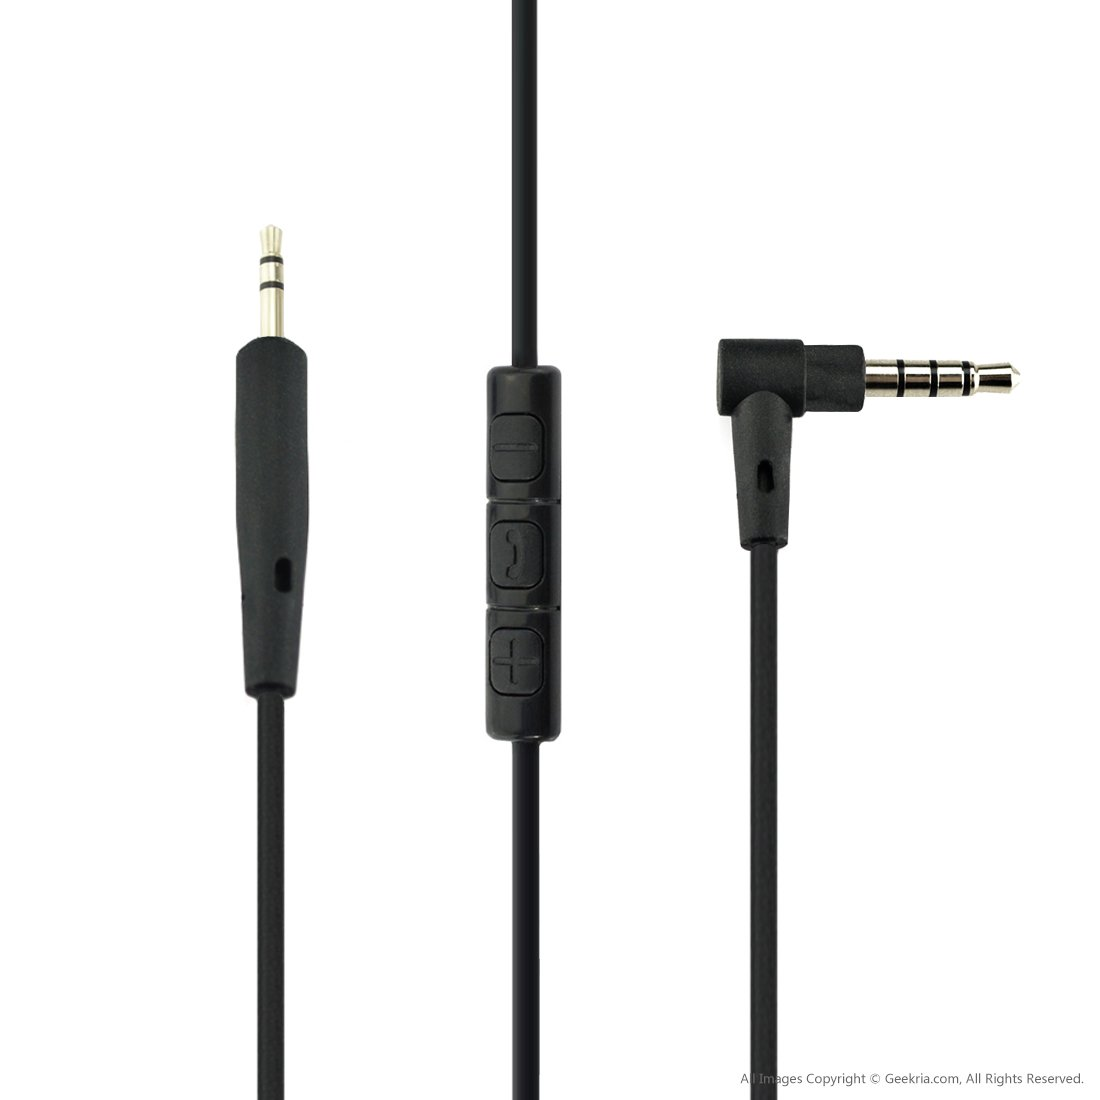 Geekria Replacement Cable for Bose QuietComfort QC25 Headphone/ Audio Cord With Inline Mic and Volume Control, Works With Apple, Android, Windows Phone (Black)